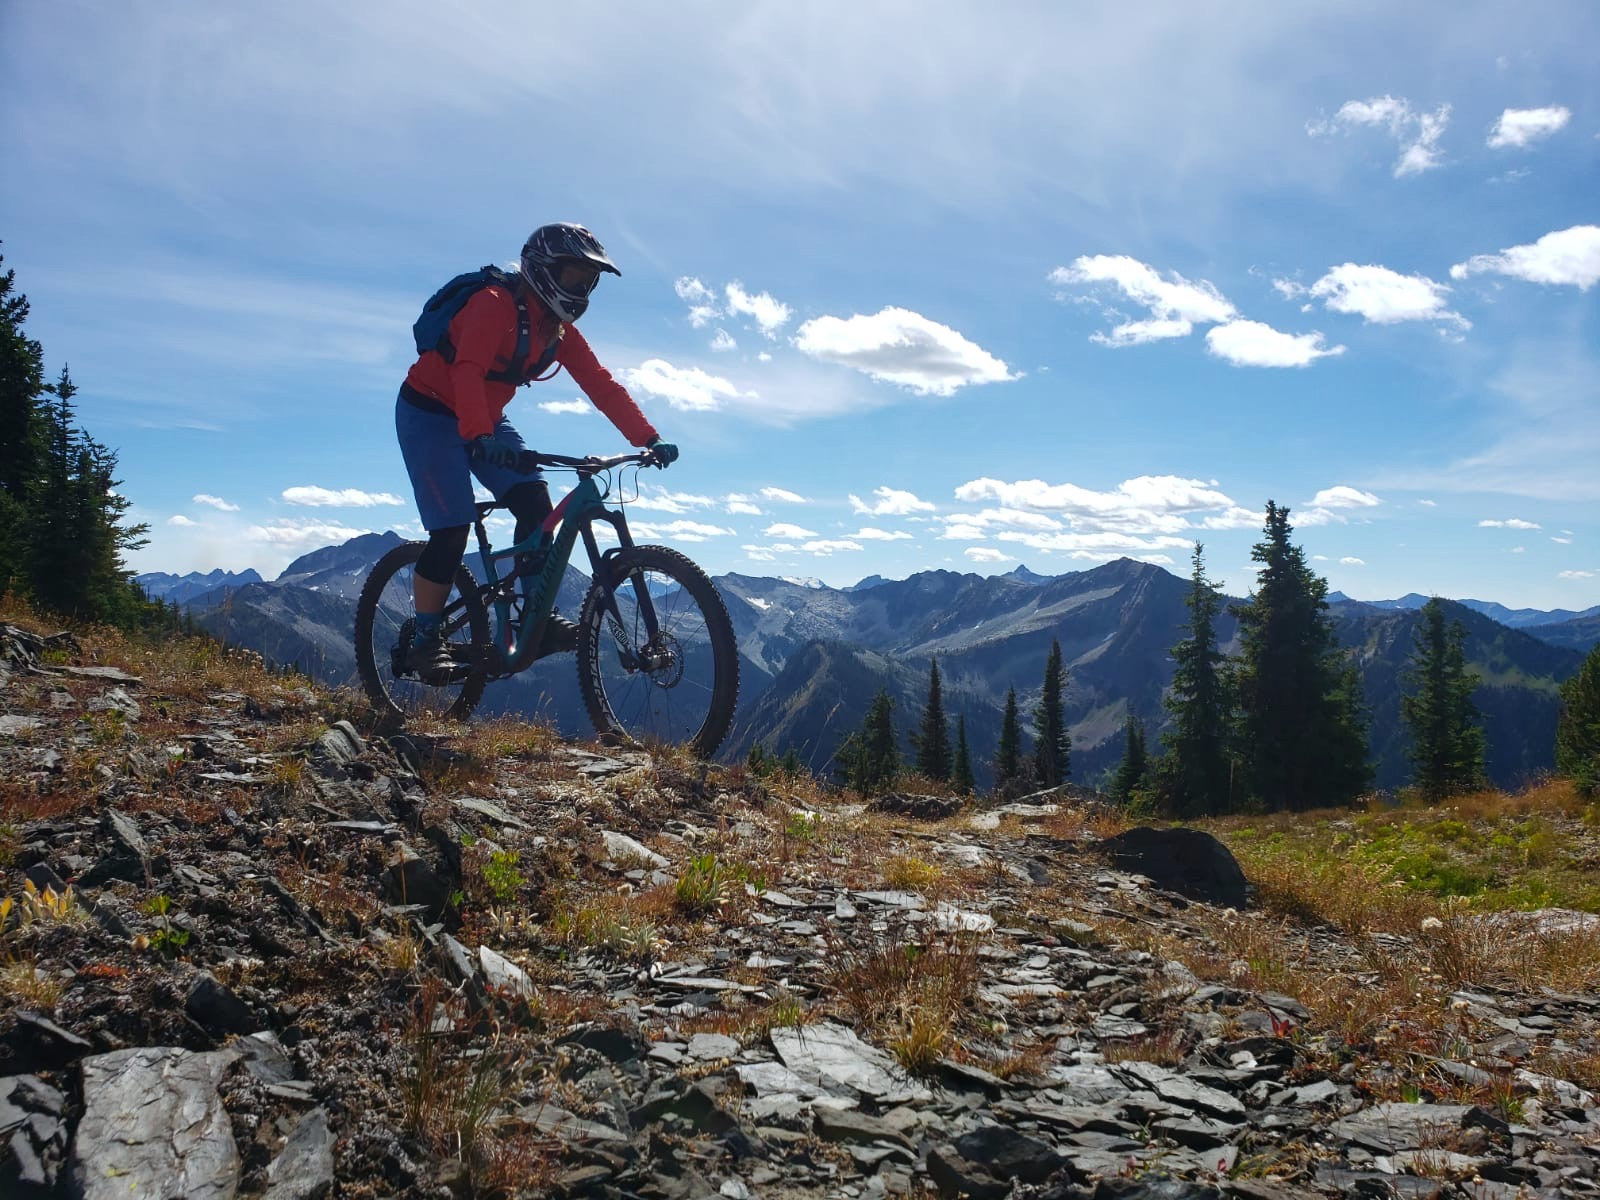 Retallack Backcountry Biking with Sweet Skills